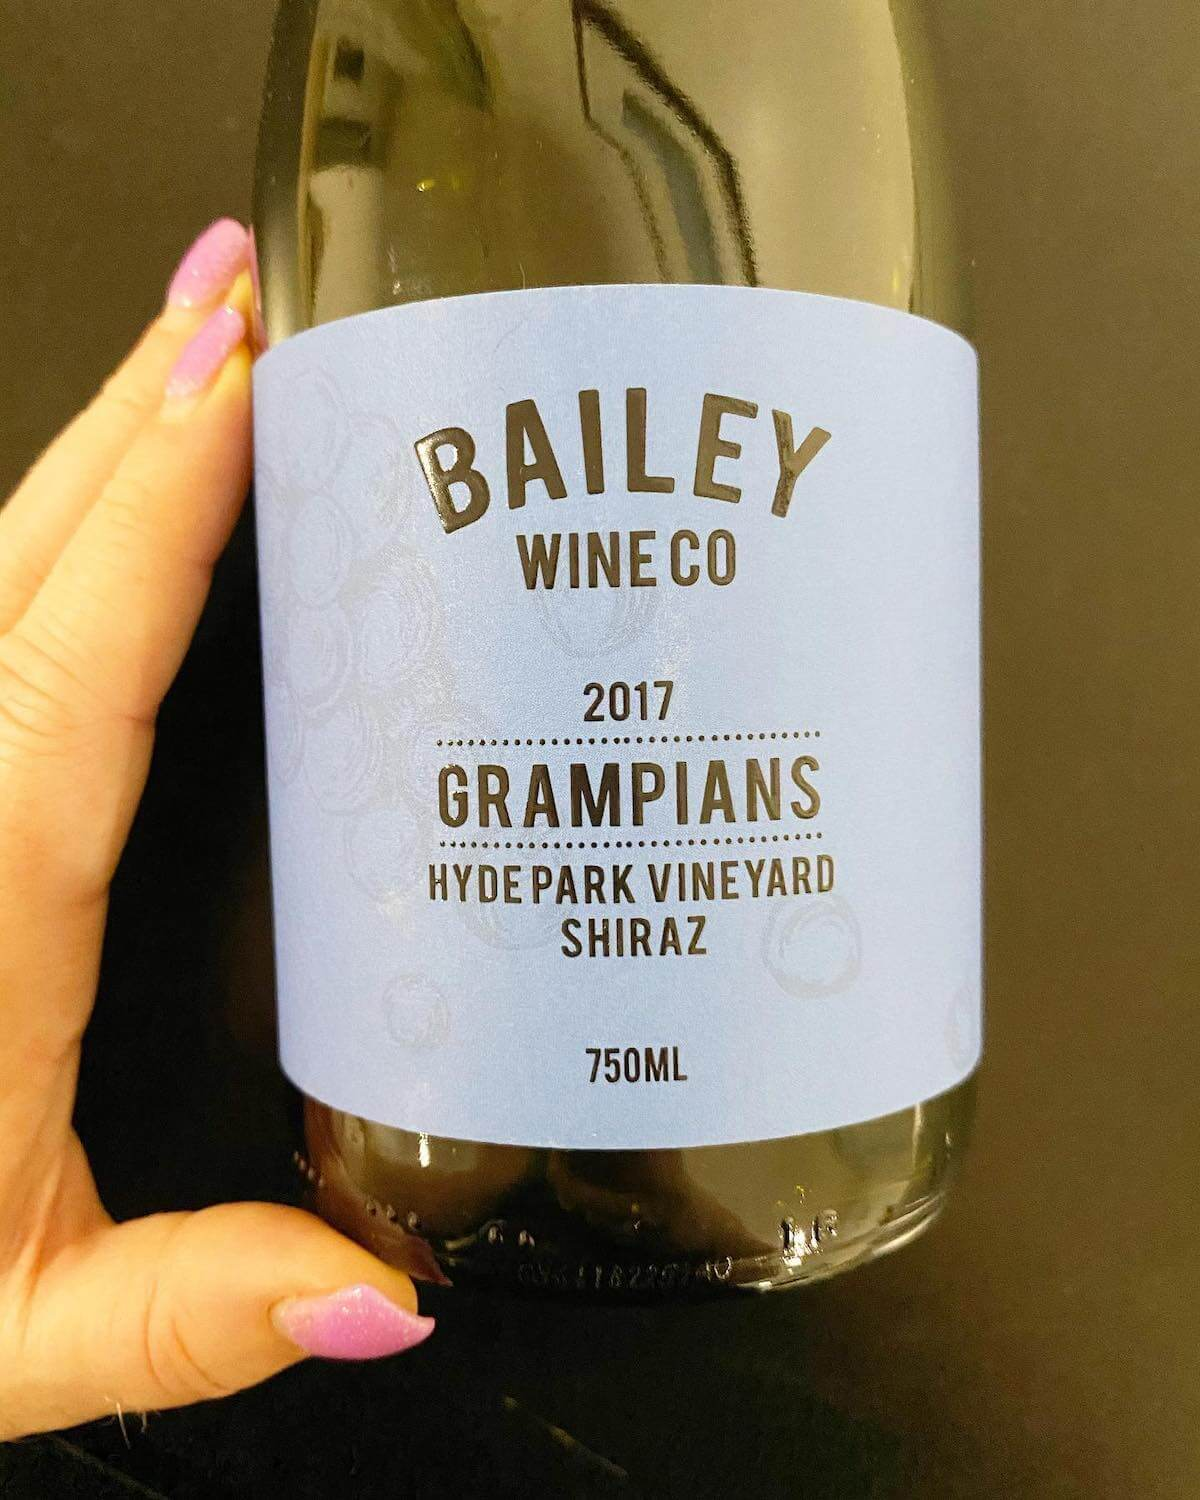 Bailey Wine Co 2017 Grampians Shiraz